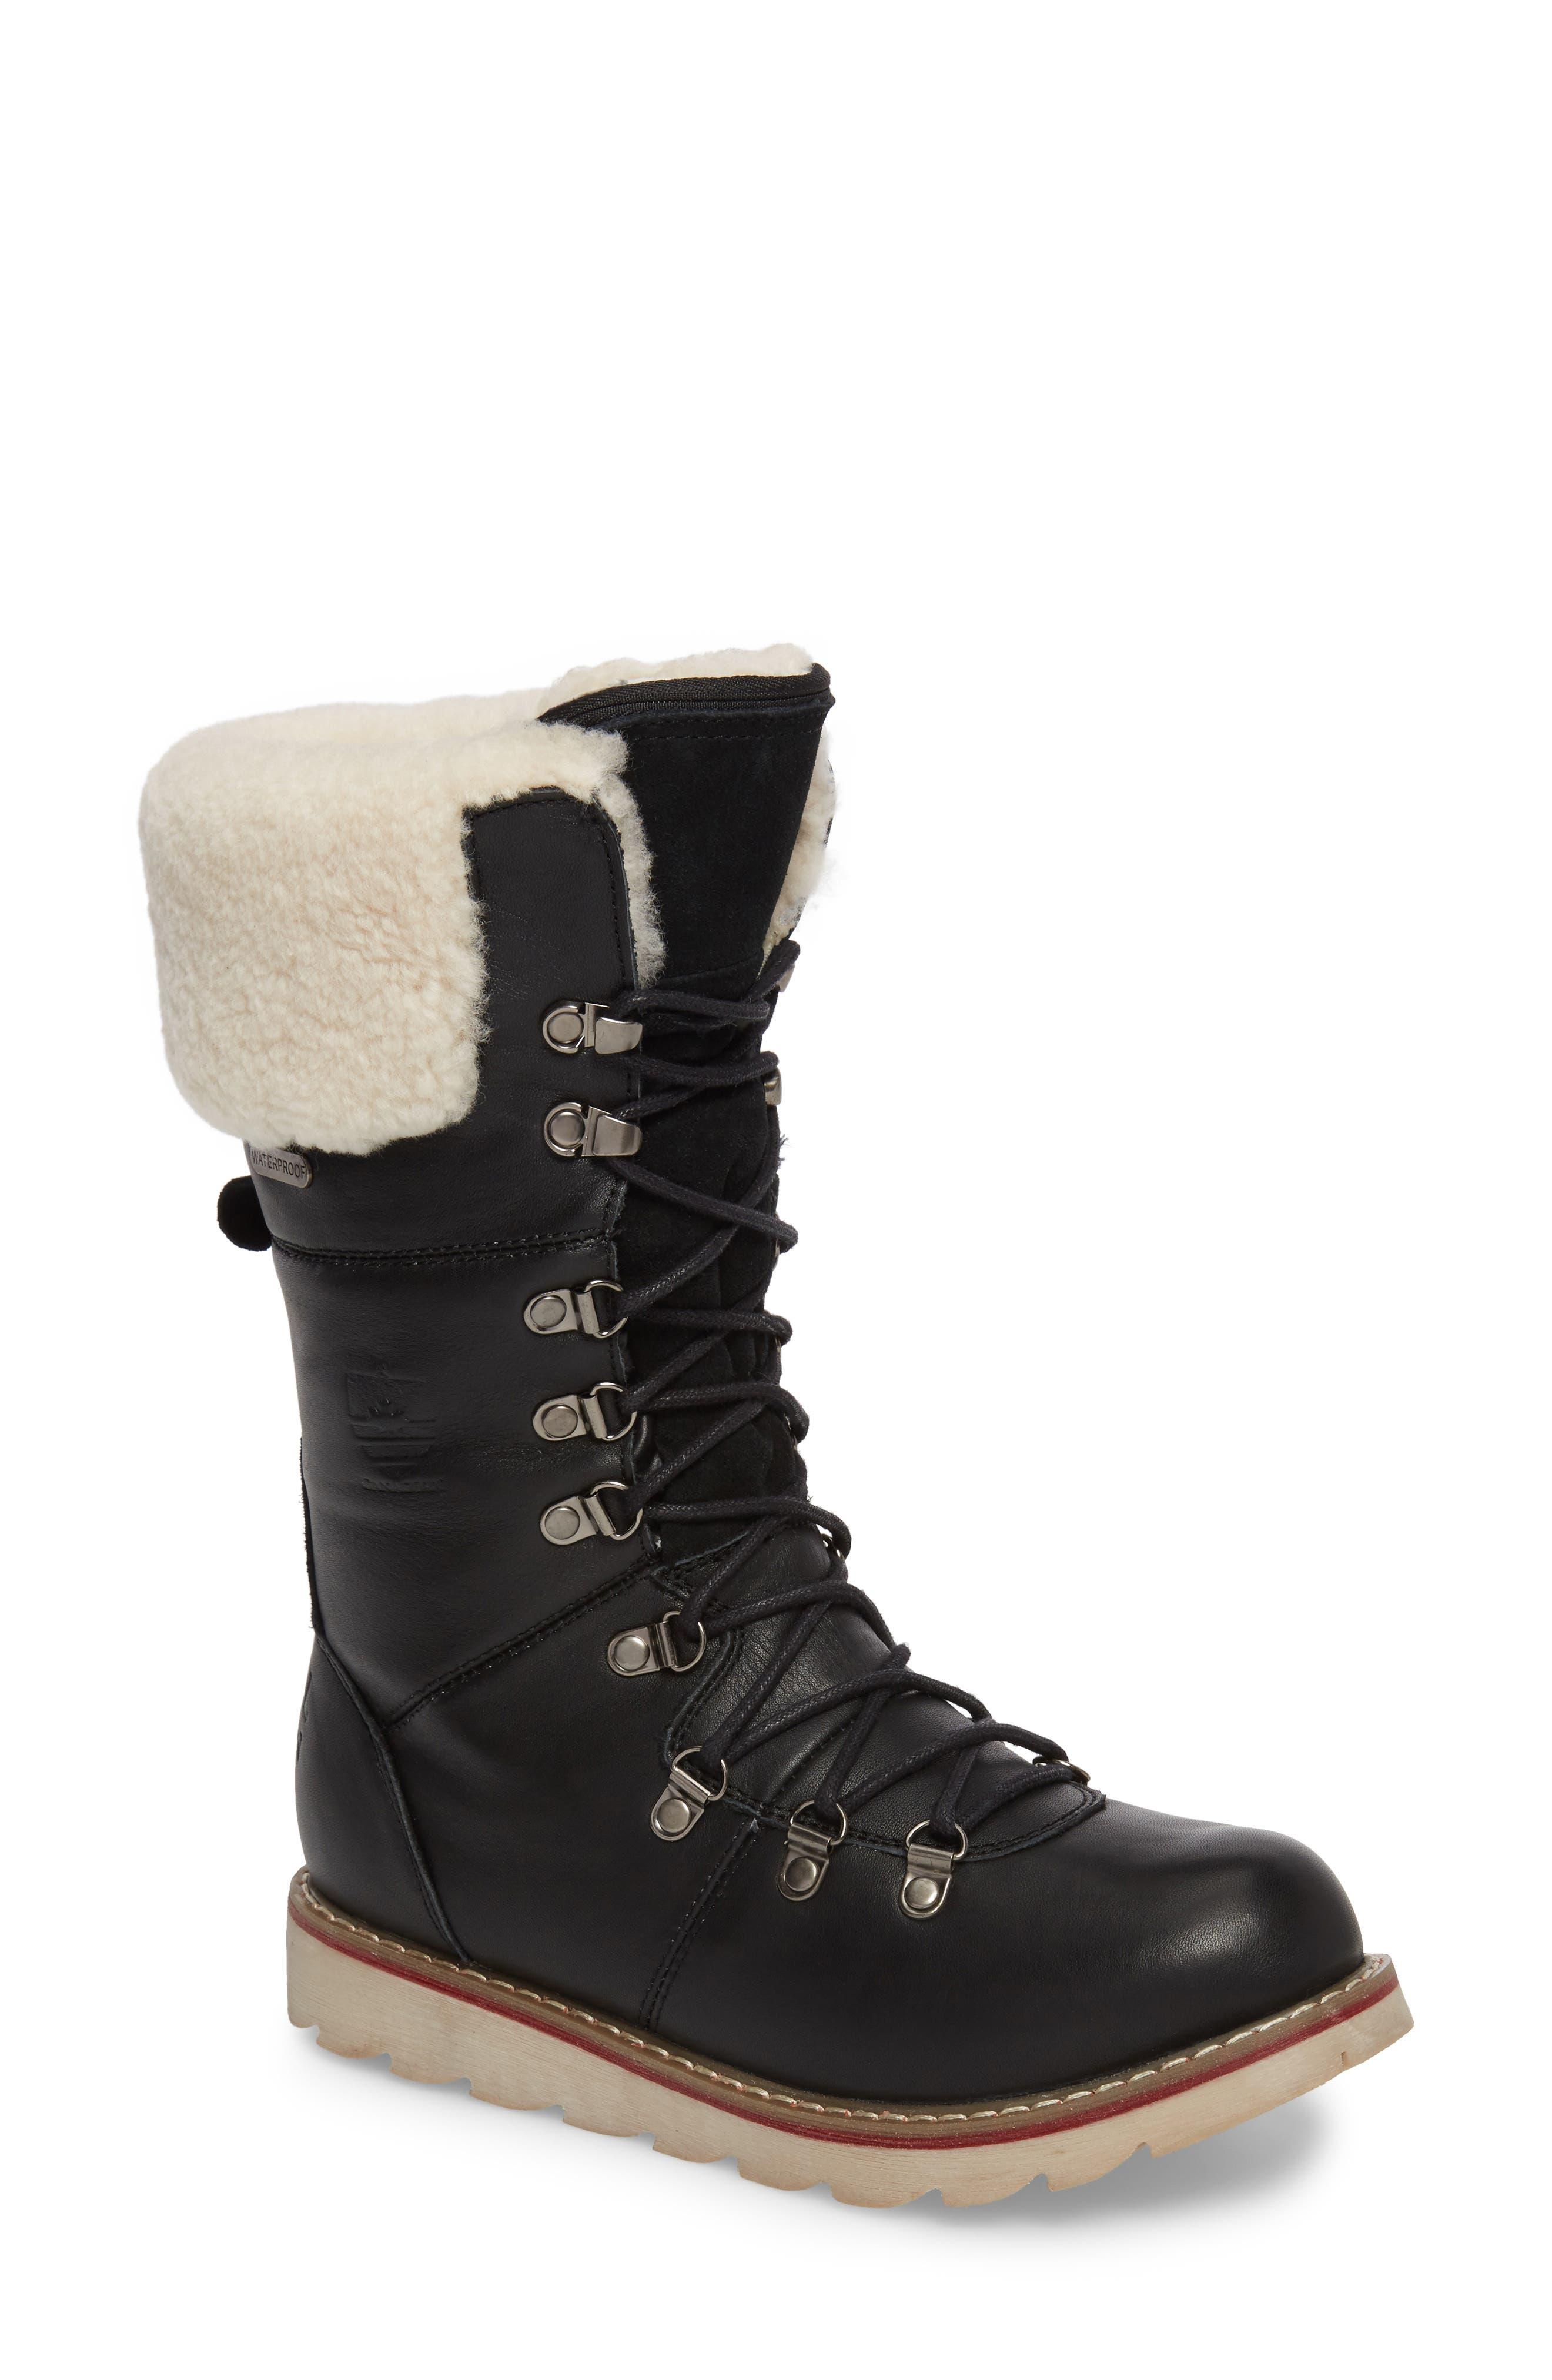 Louise Waterproof Snow Boot with Genuine Shearling Cuff,                         Main,                         color, 001